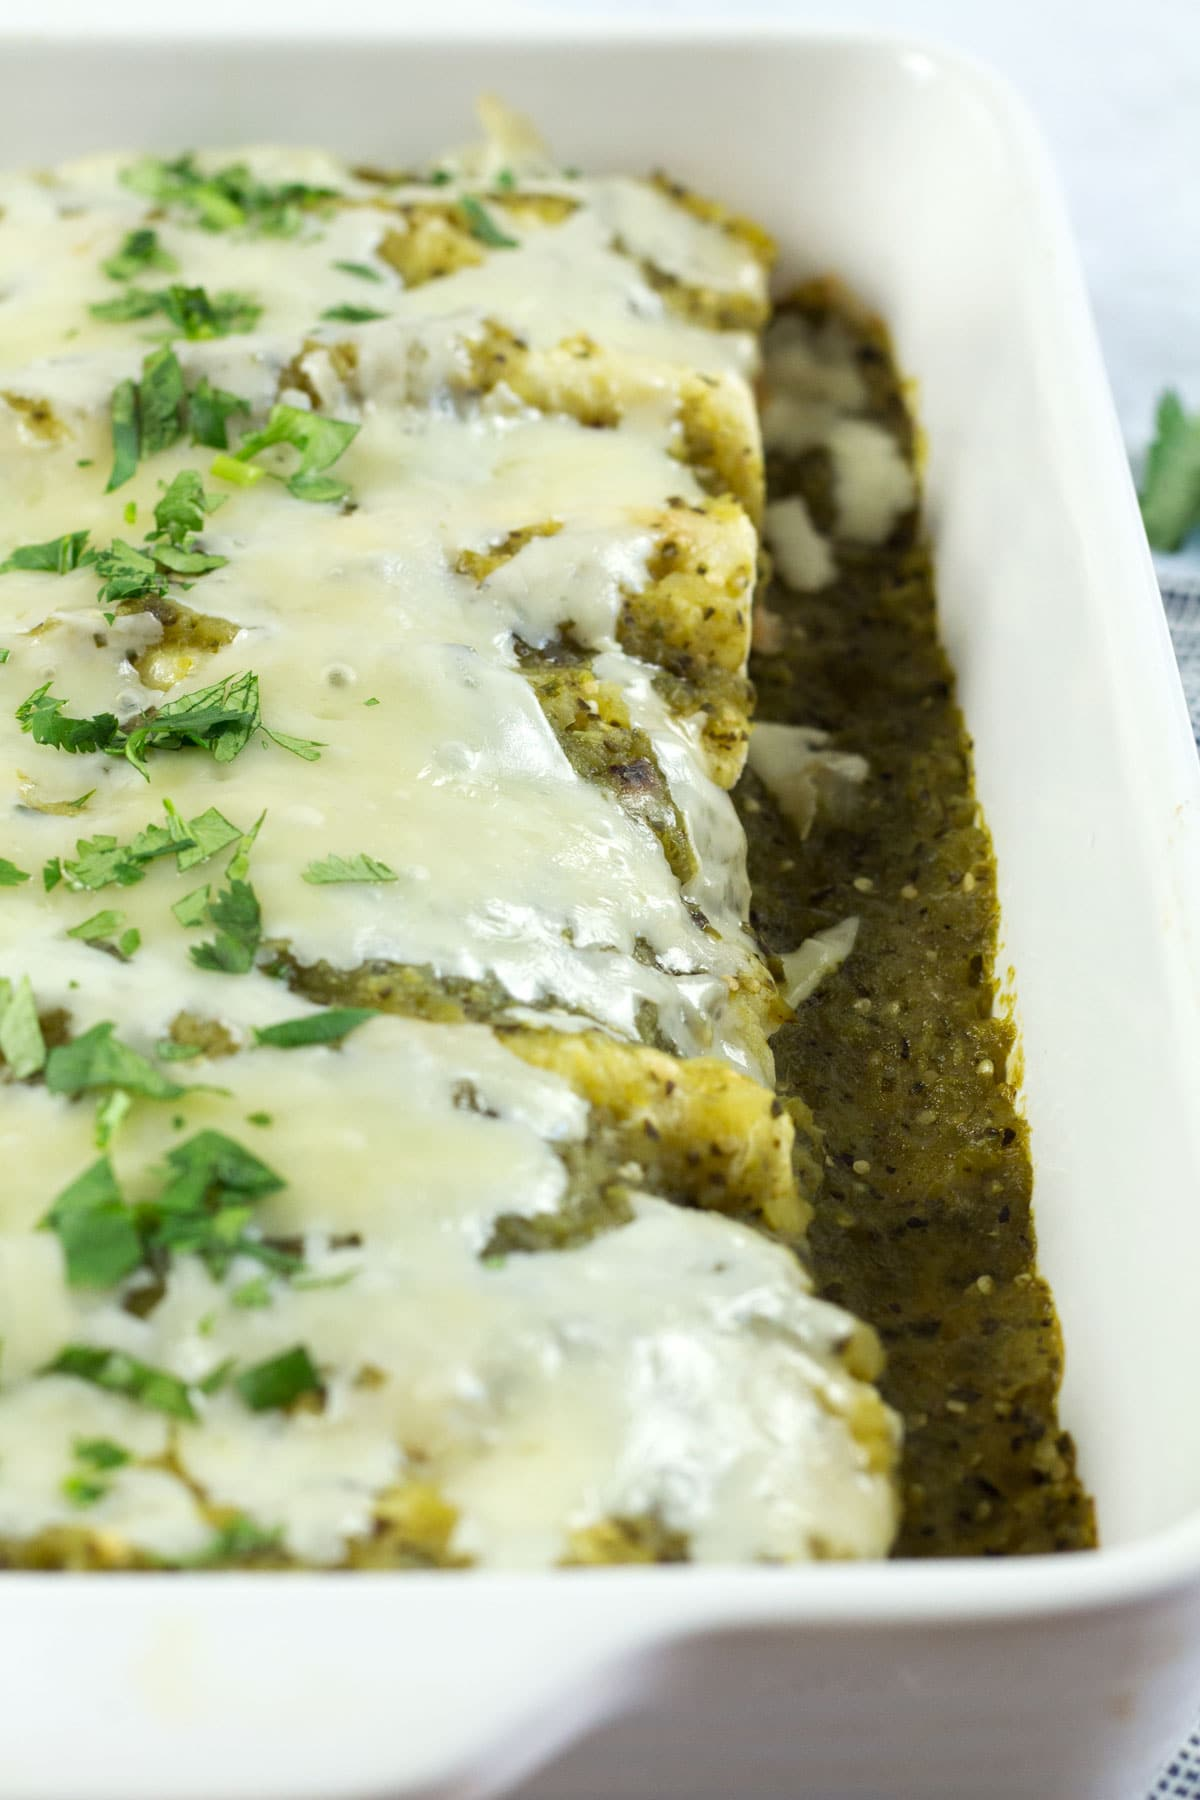 Monterey jack cheese melted over the top of green enchiladas.